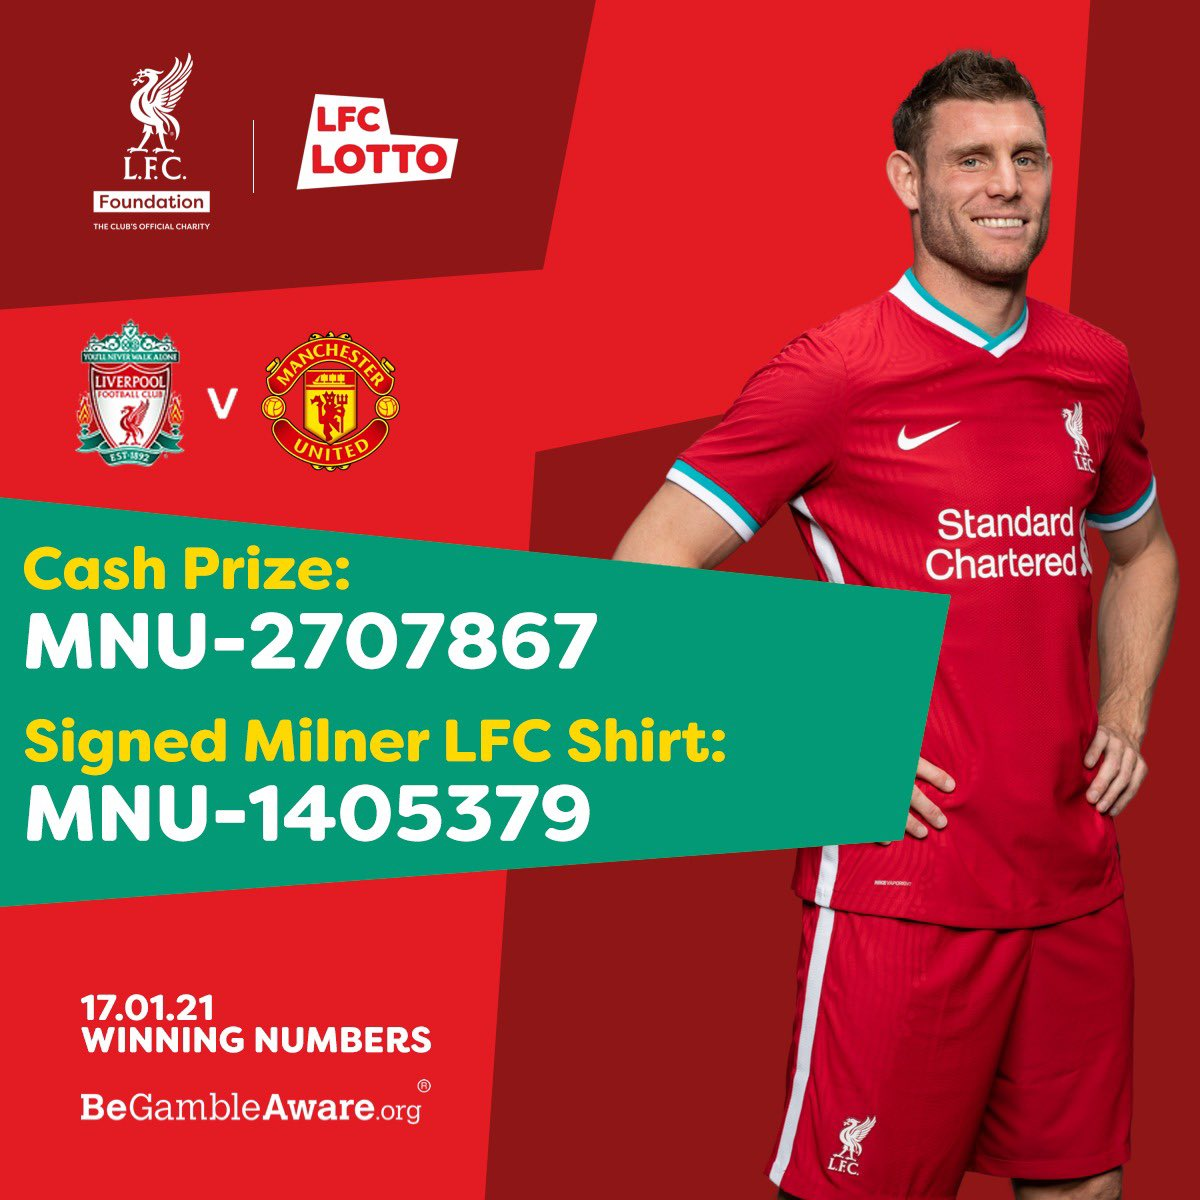 🔴TODAY'S WINNING NUMBERS!  💷Huge Cash Prize: MNU- 2707867 🏆Signed Milner Shirt: MNU- 1405379  👏Congrats to our winners & a huge thanks to those who continue to support the @LFCFoundation with every ticket!  Think you're a winner?👇   #LIVMUN #YNWA